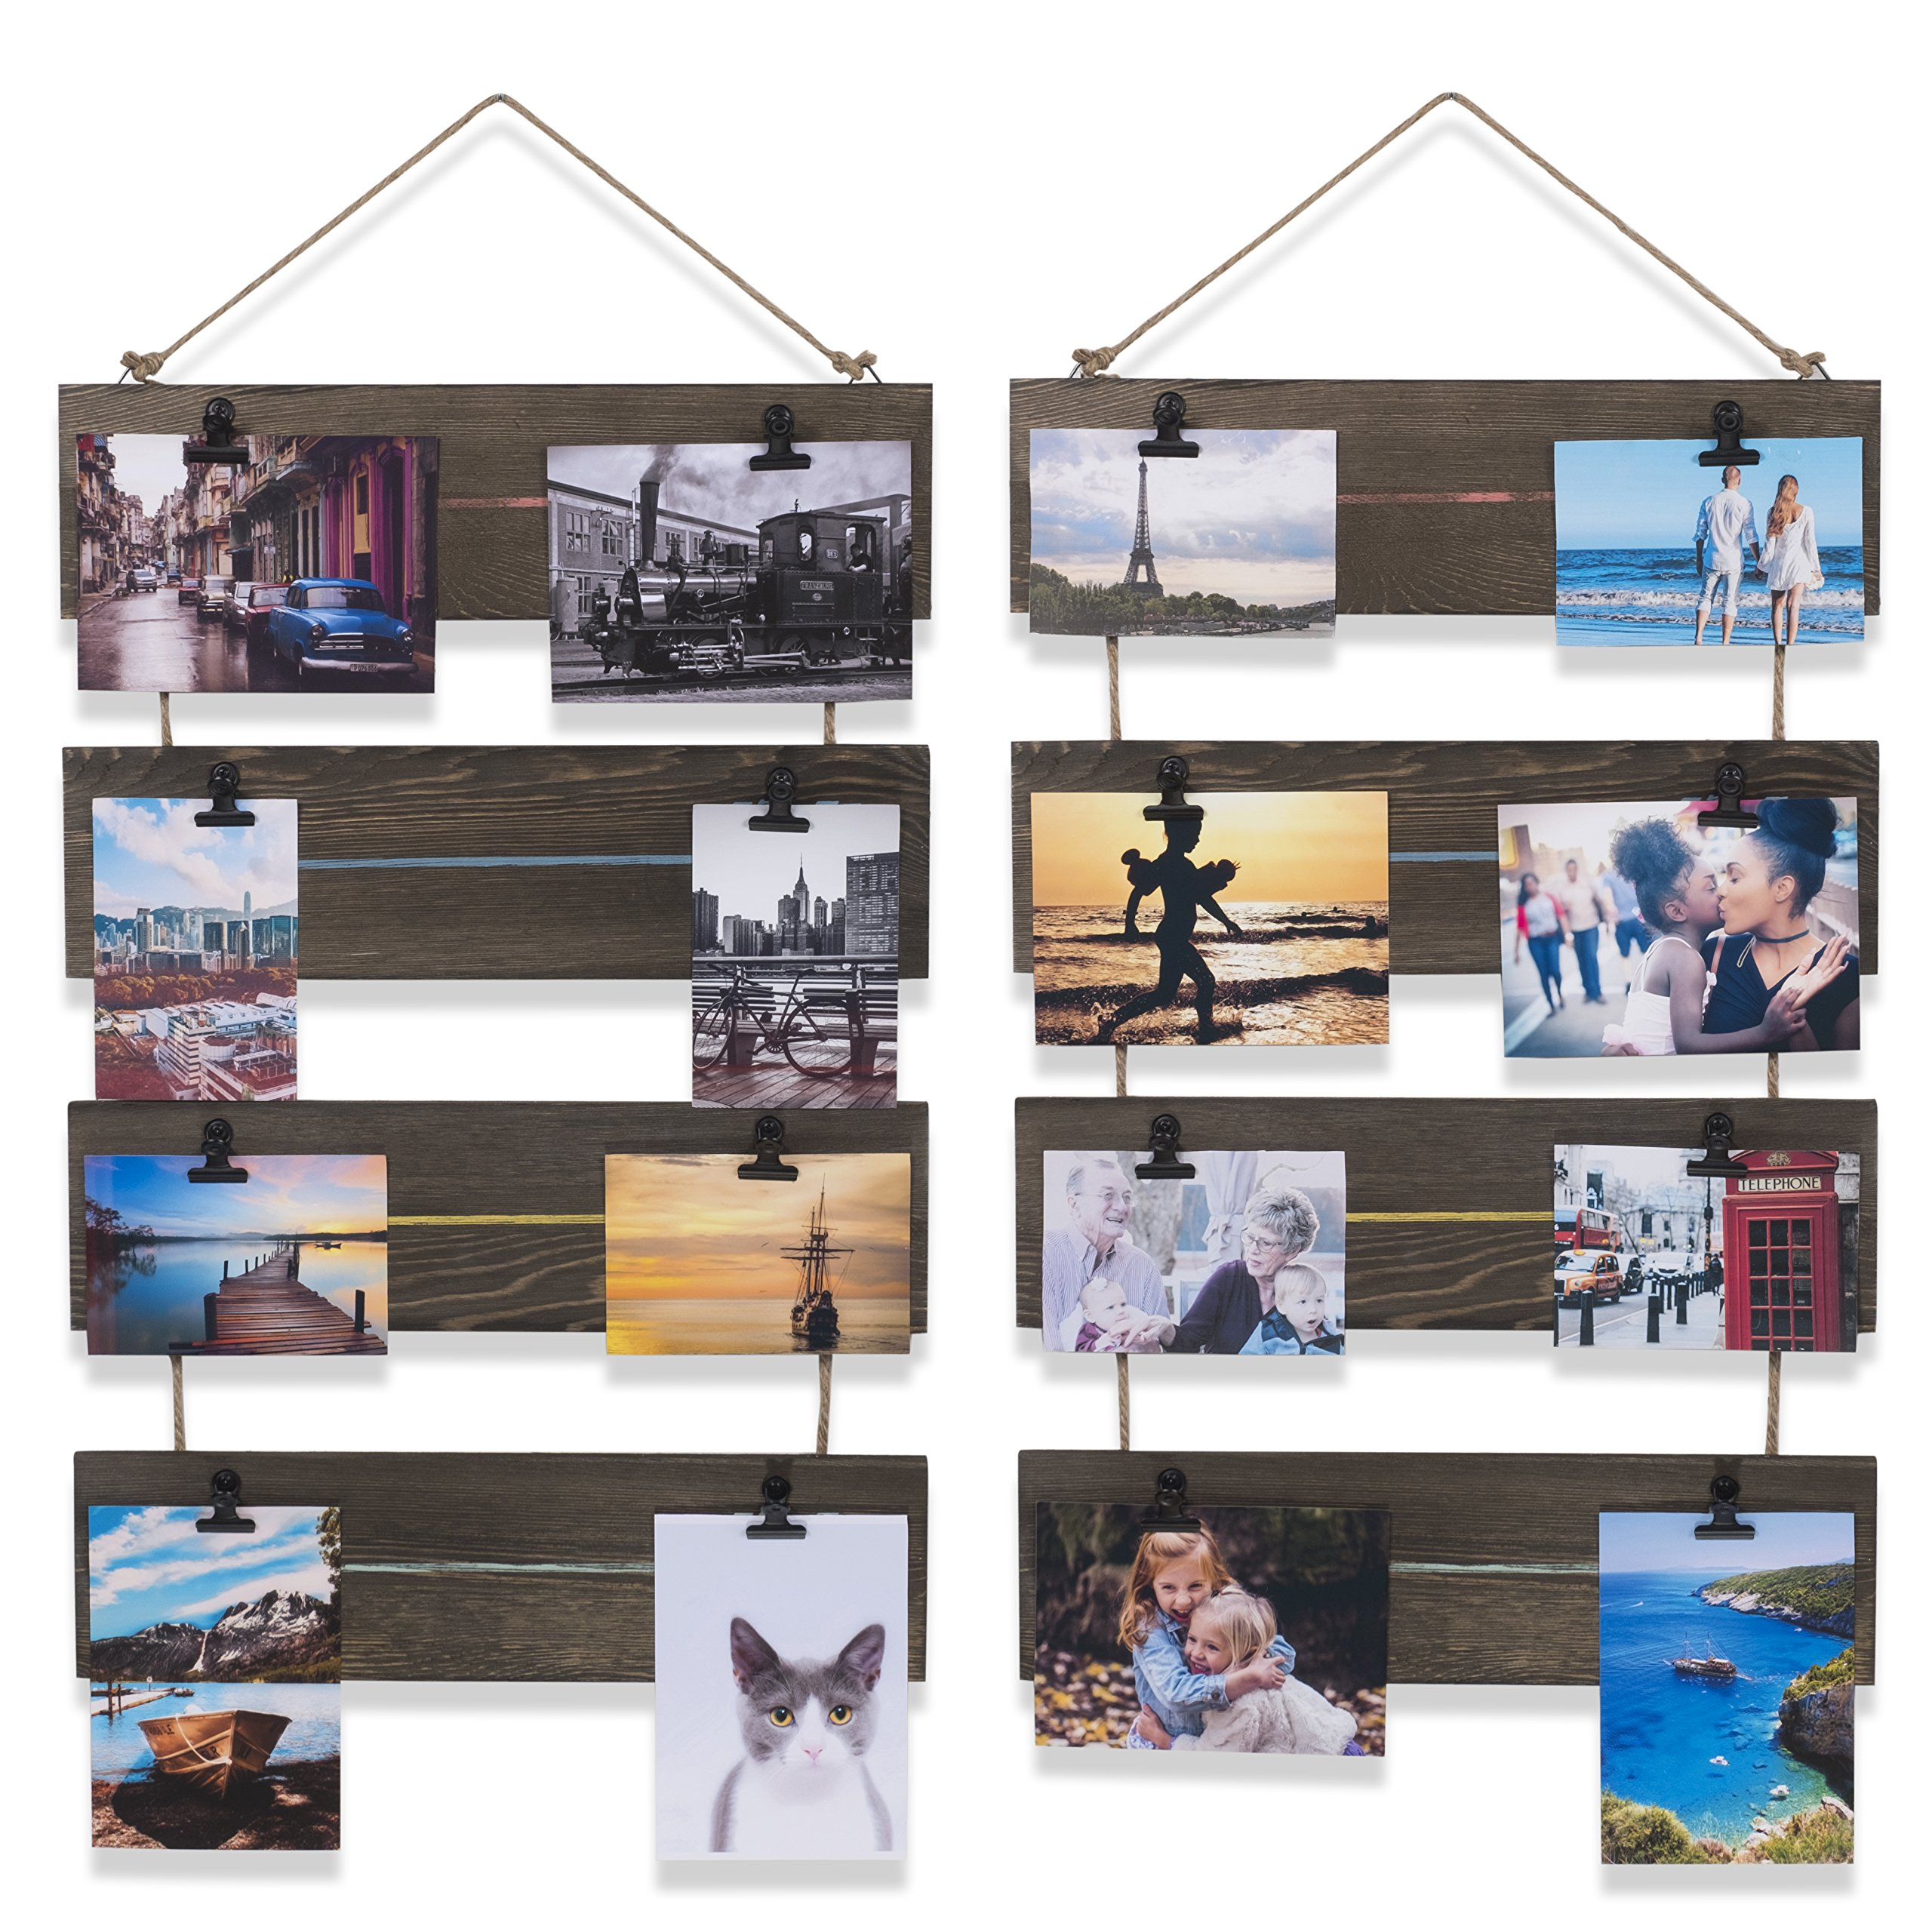 Living Room Decorative Vertical Photo Display Clip Board Wood Walnut 26 Inch Set of 2